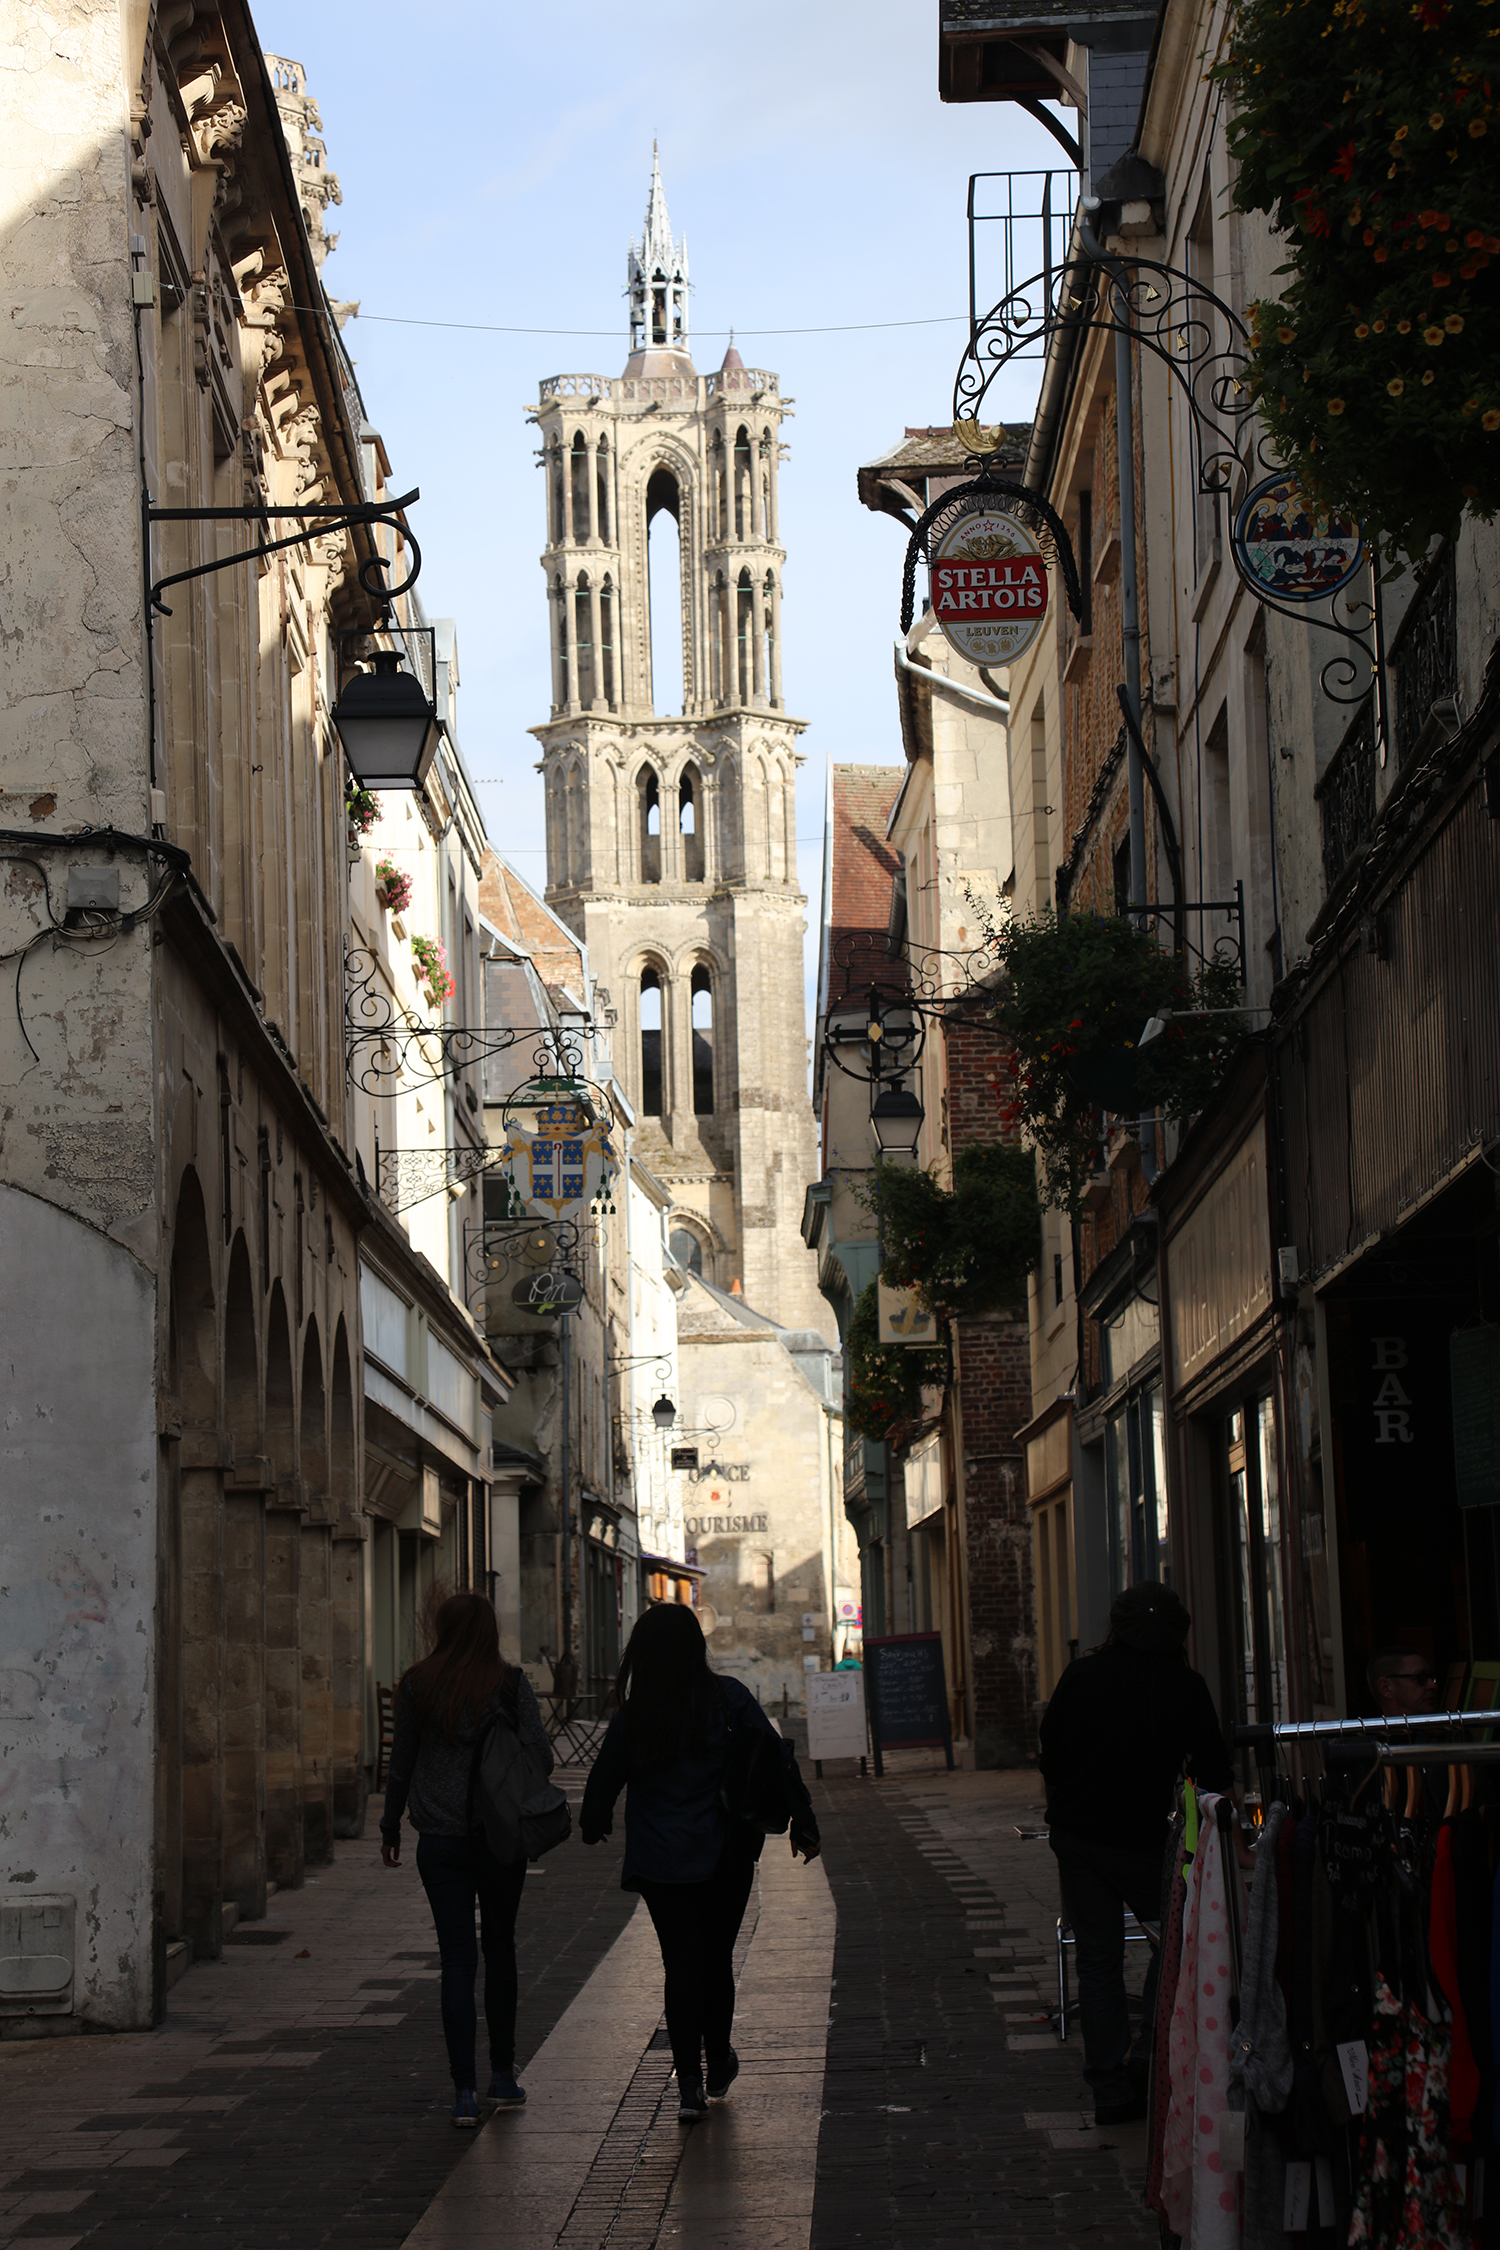 Street views show different aspects of the multi-towered cathedral